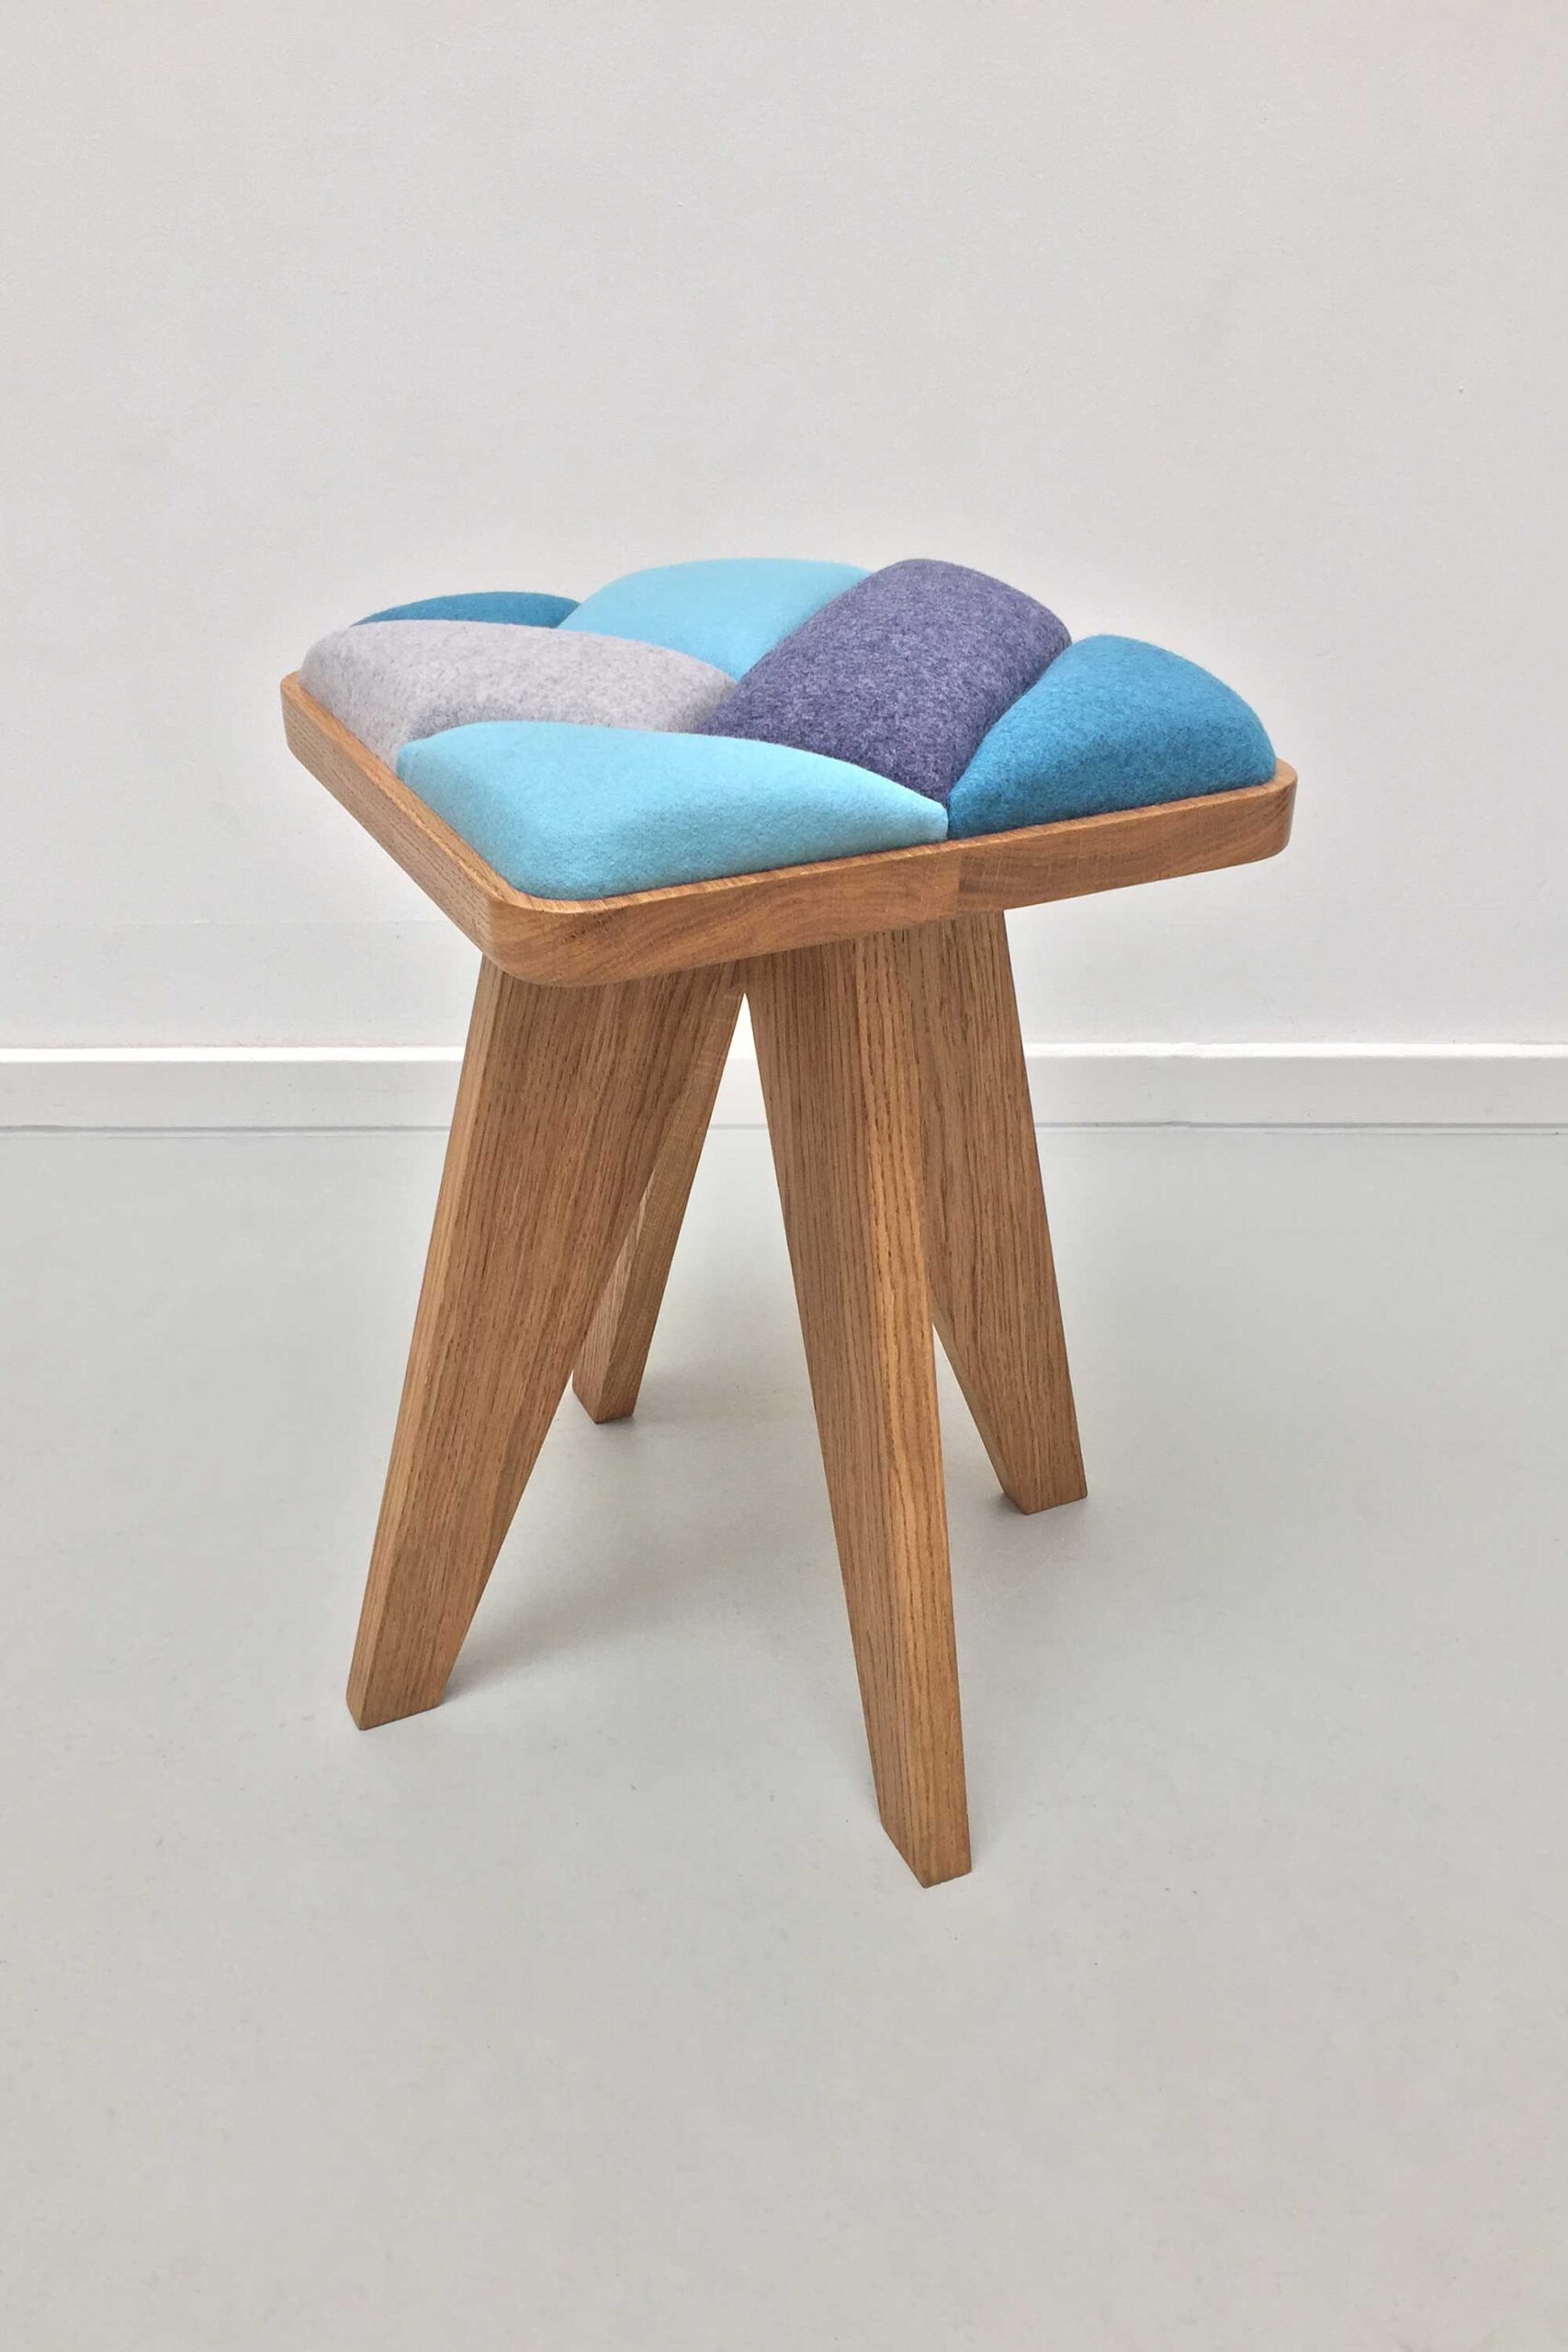 blue furniture kvadrat merel karhof